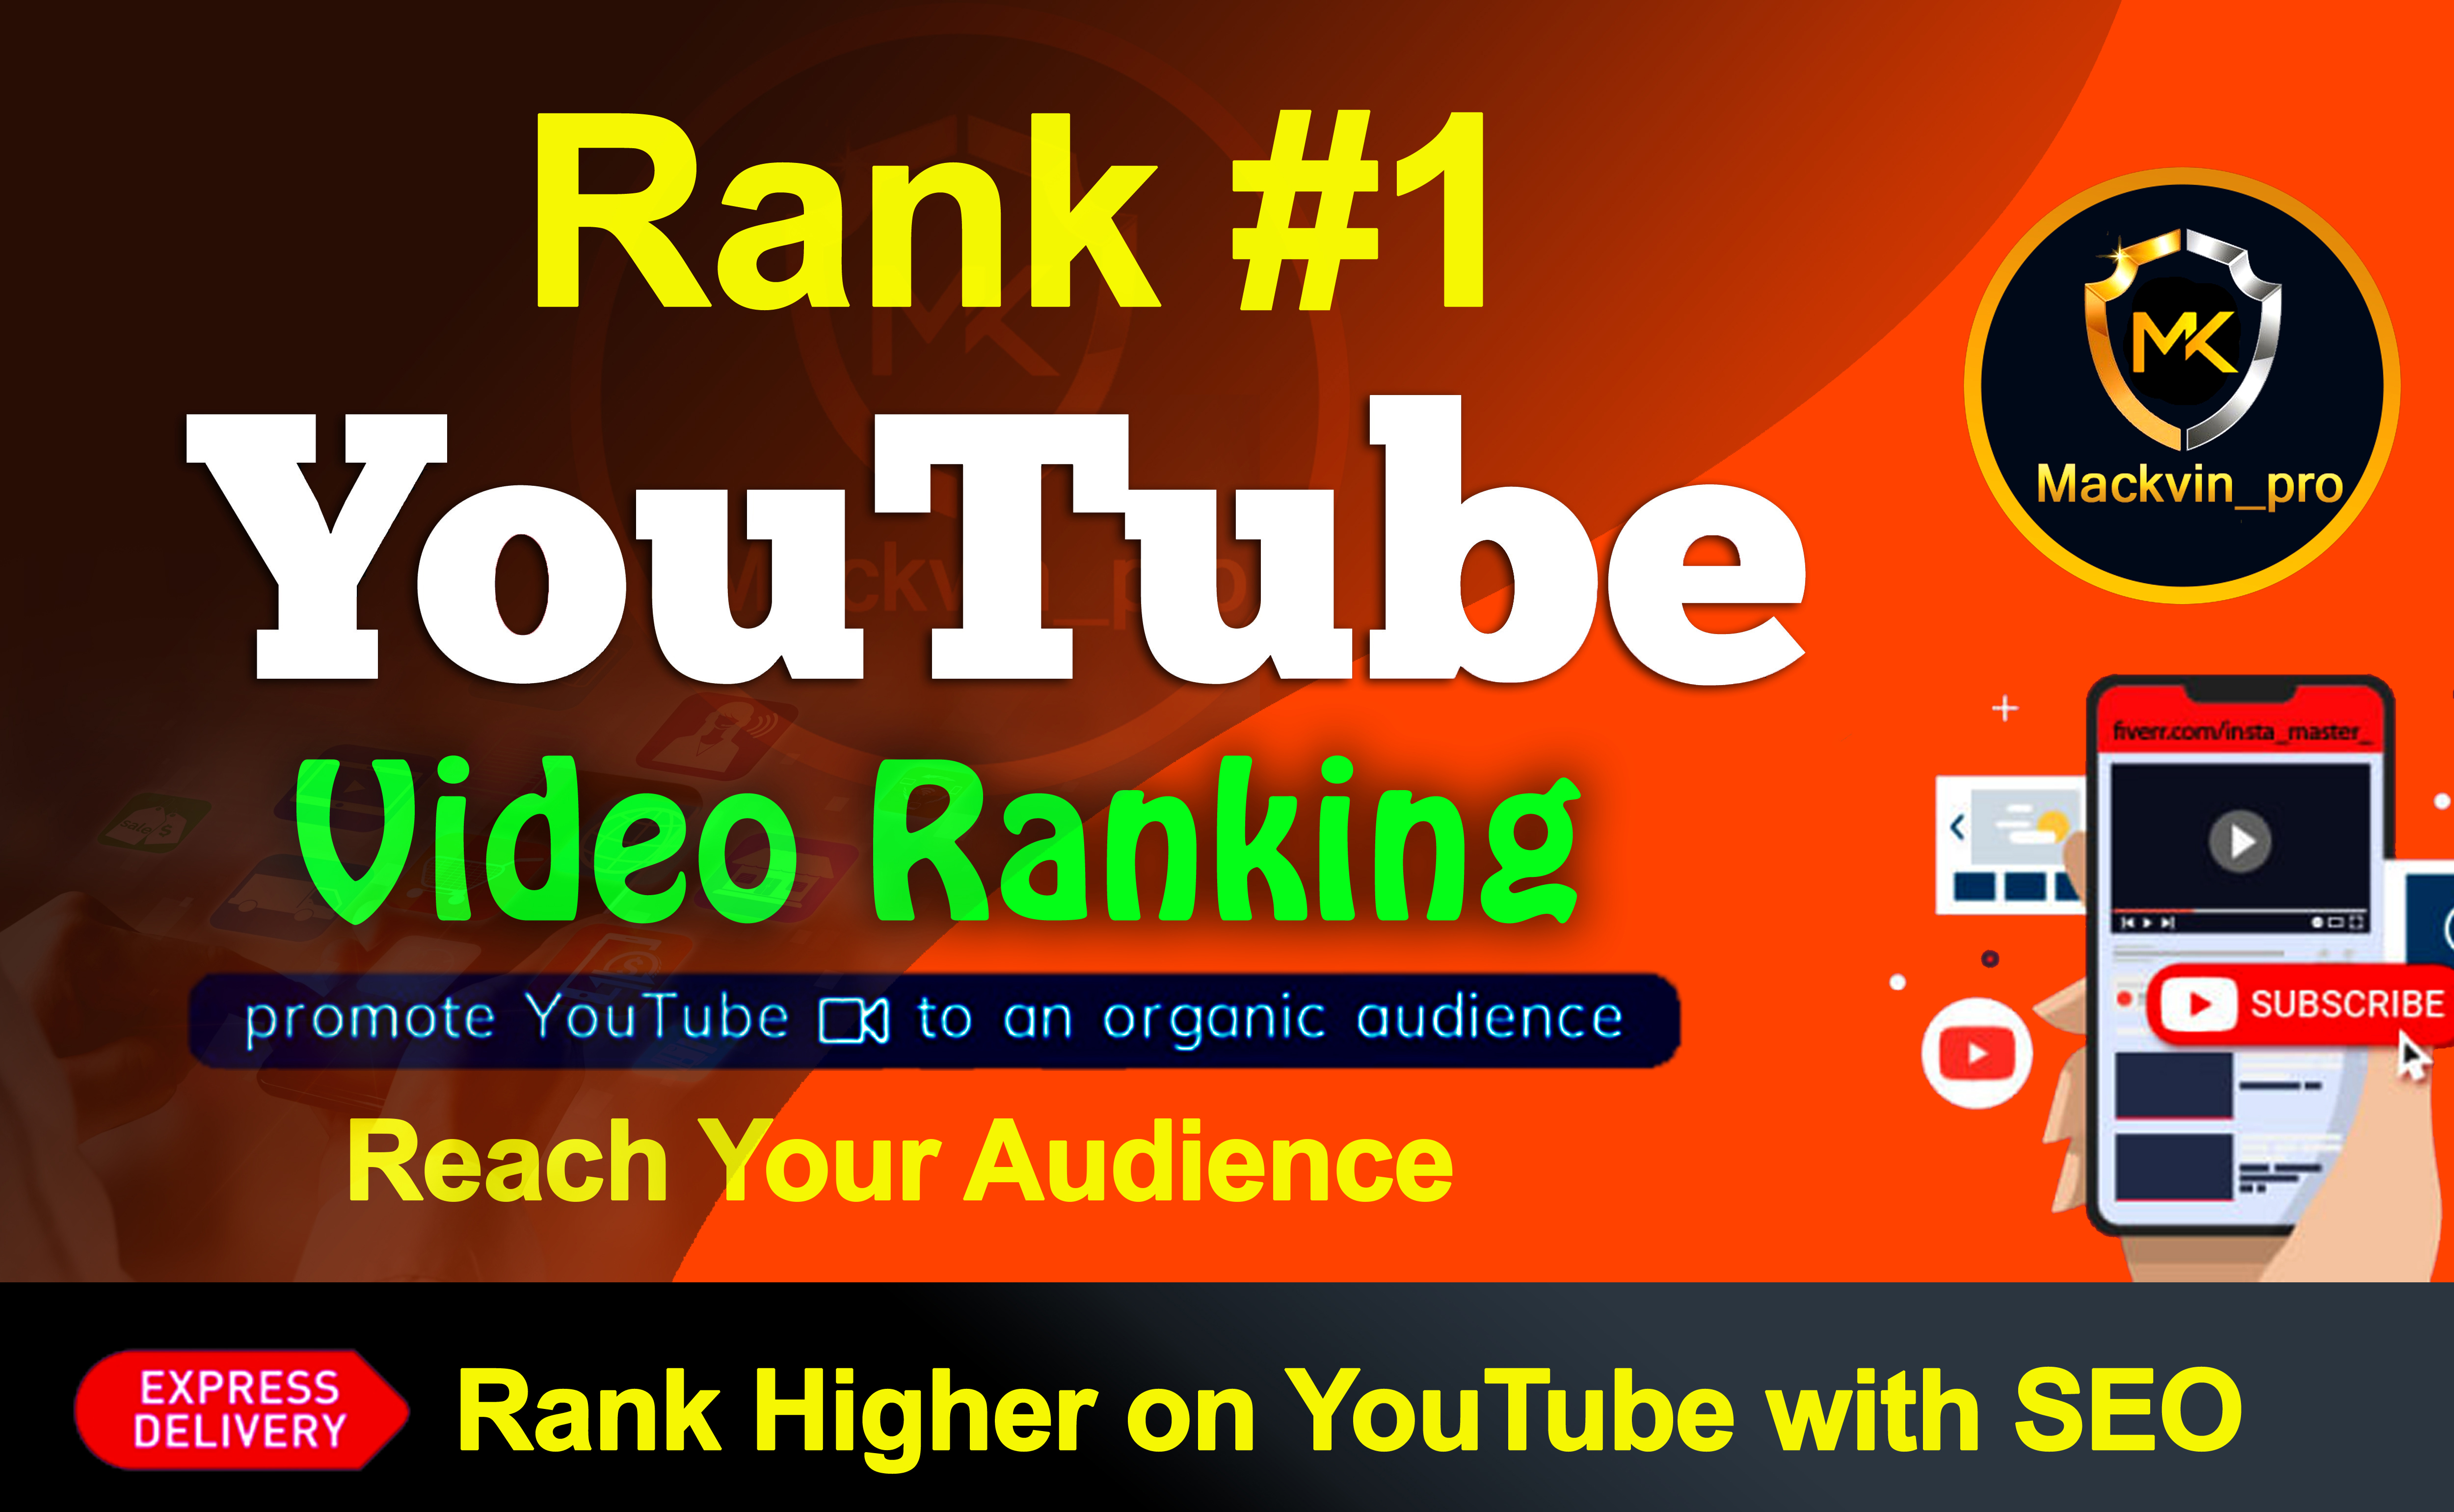 YouTube Video promotion Ranking on First Page with Real Audience and SEO